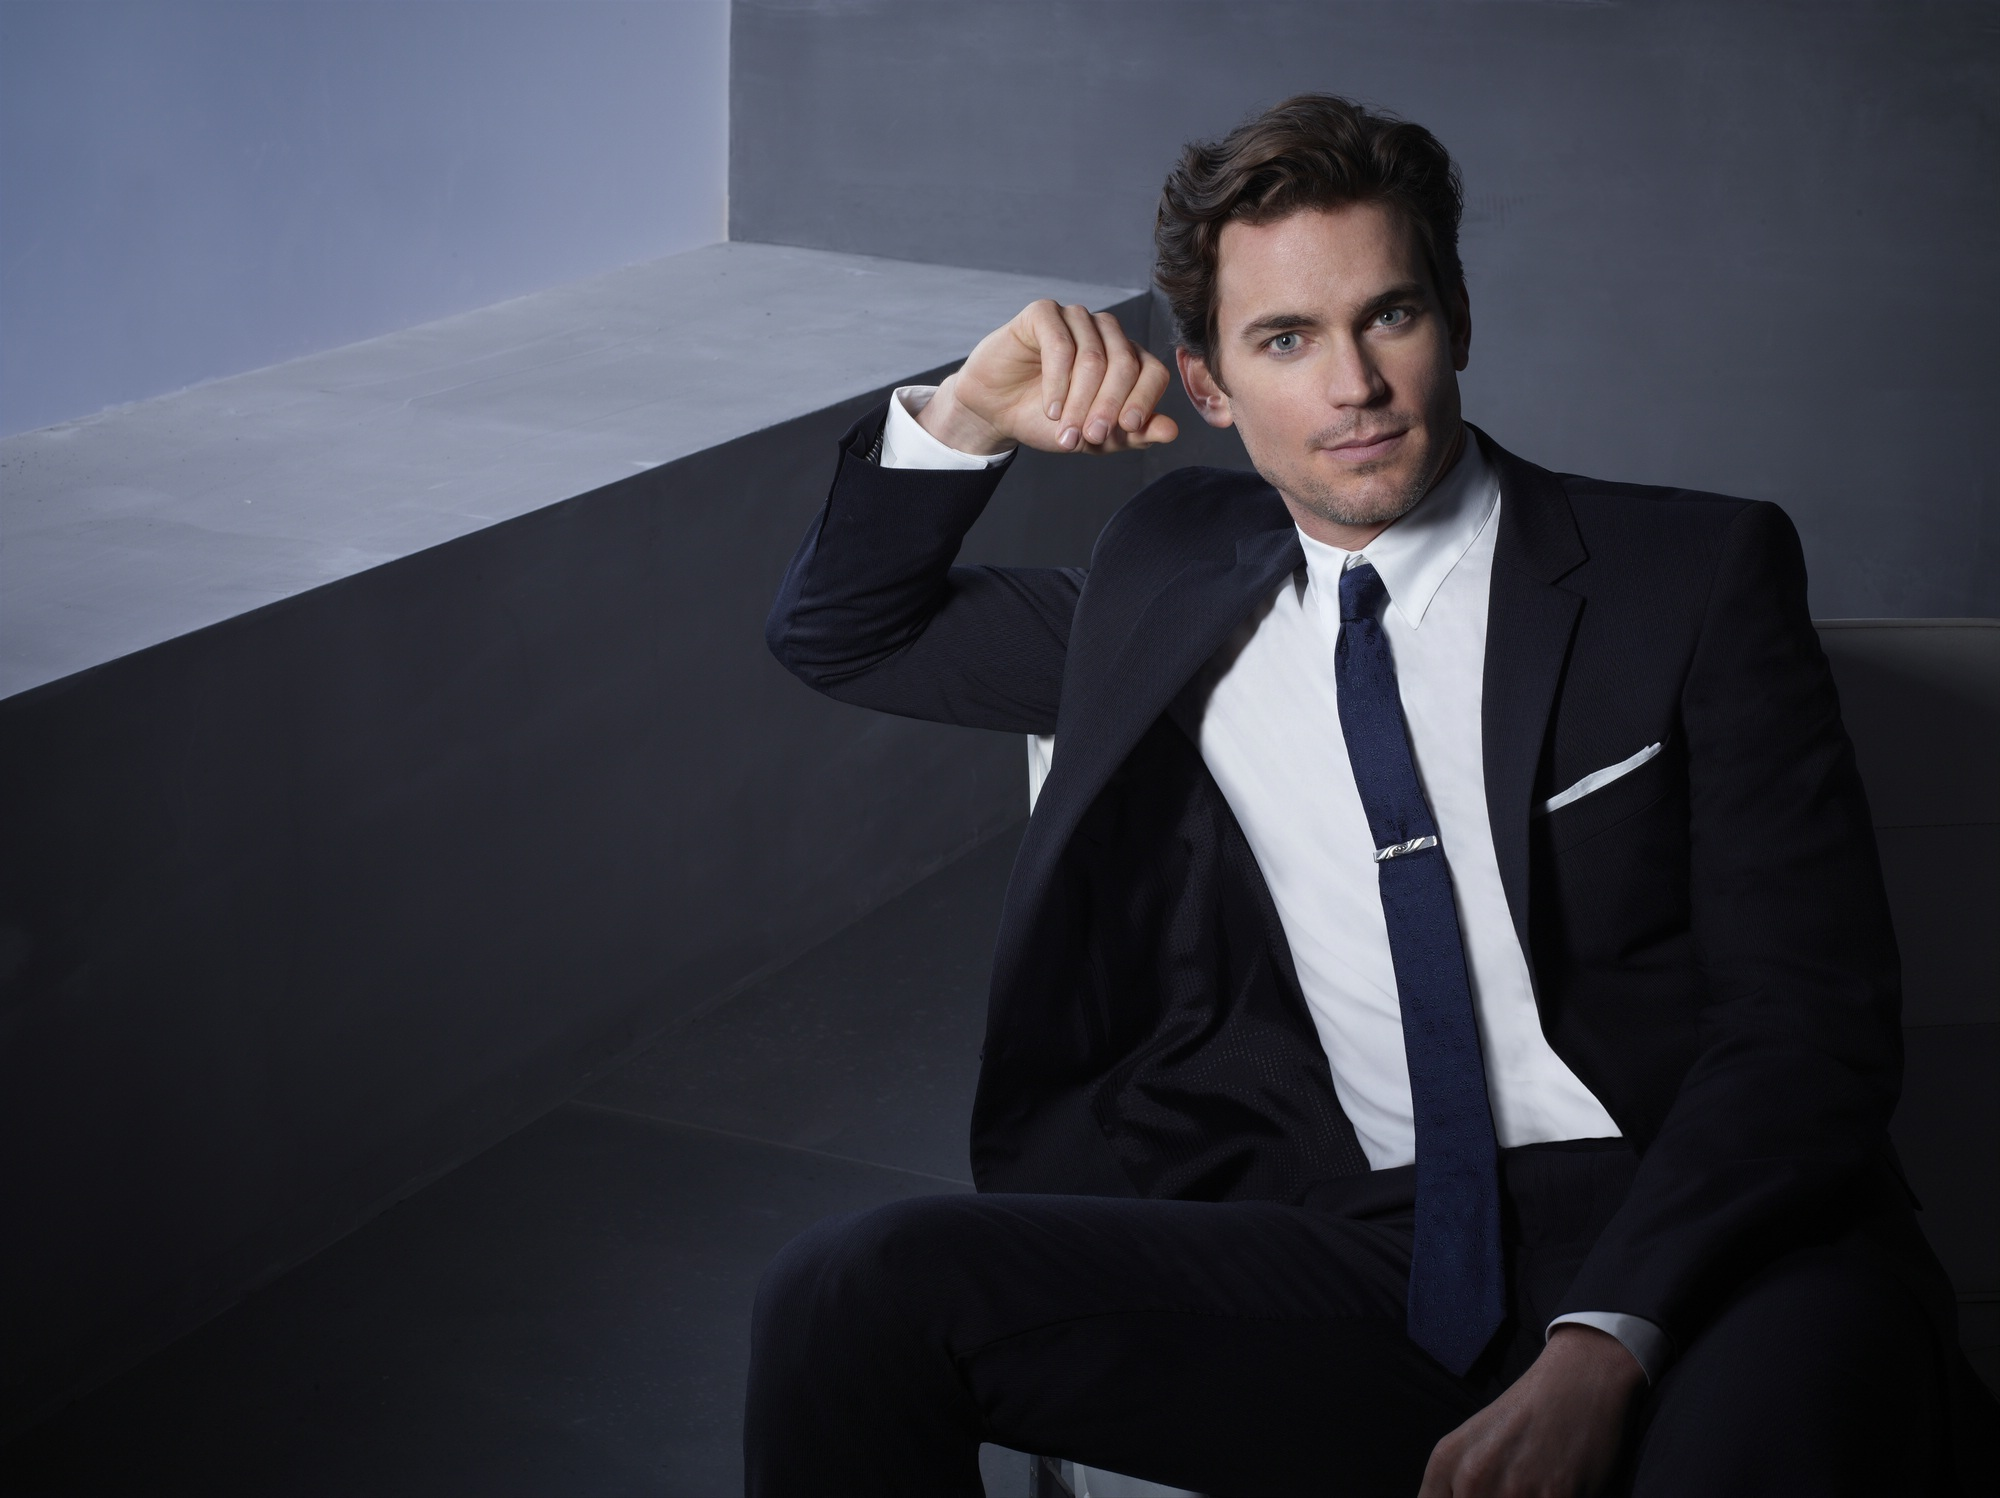 Matt Bomer Fifty Shades of Grey